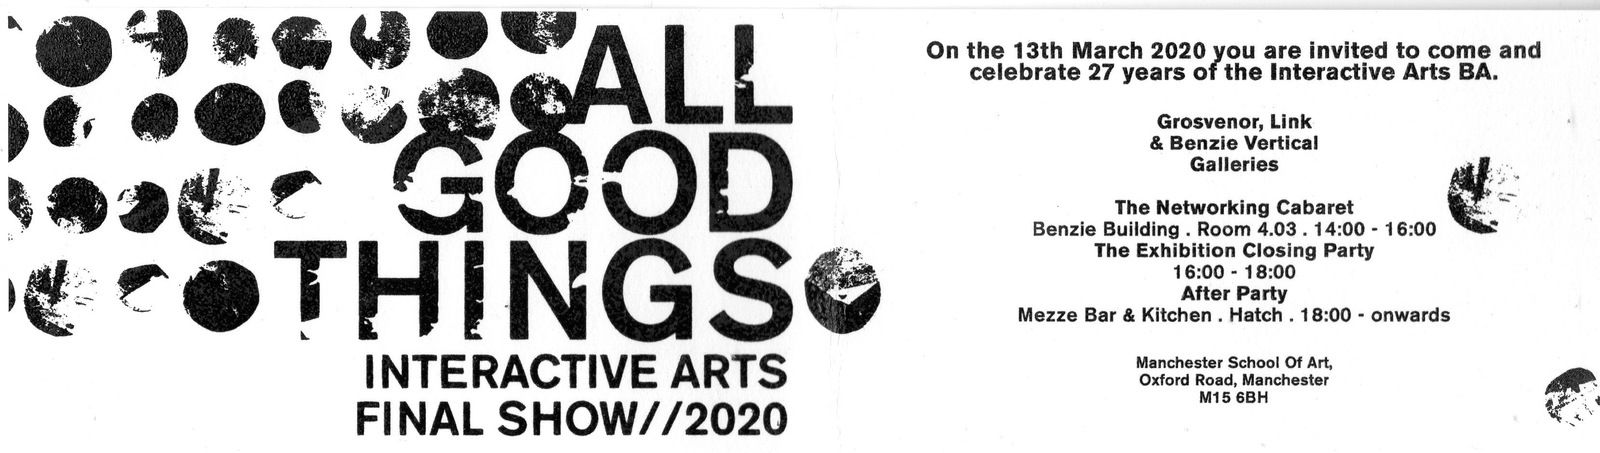 All Good Things - Manchester Shool of Art